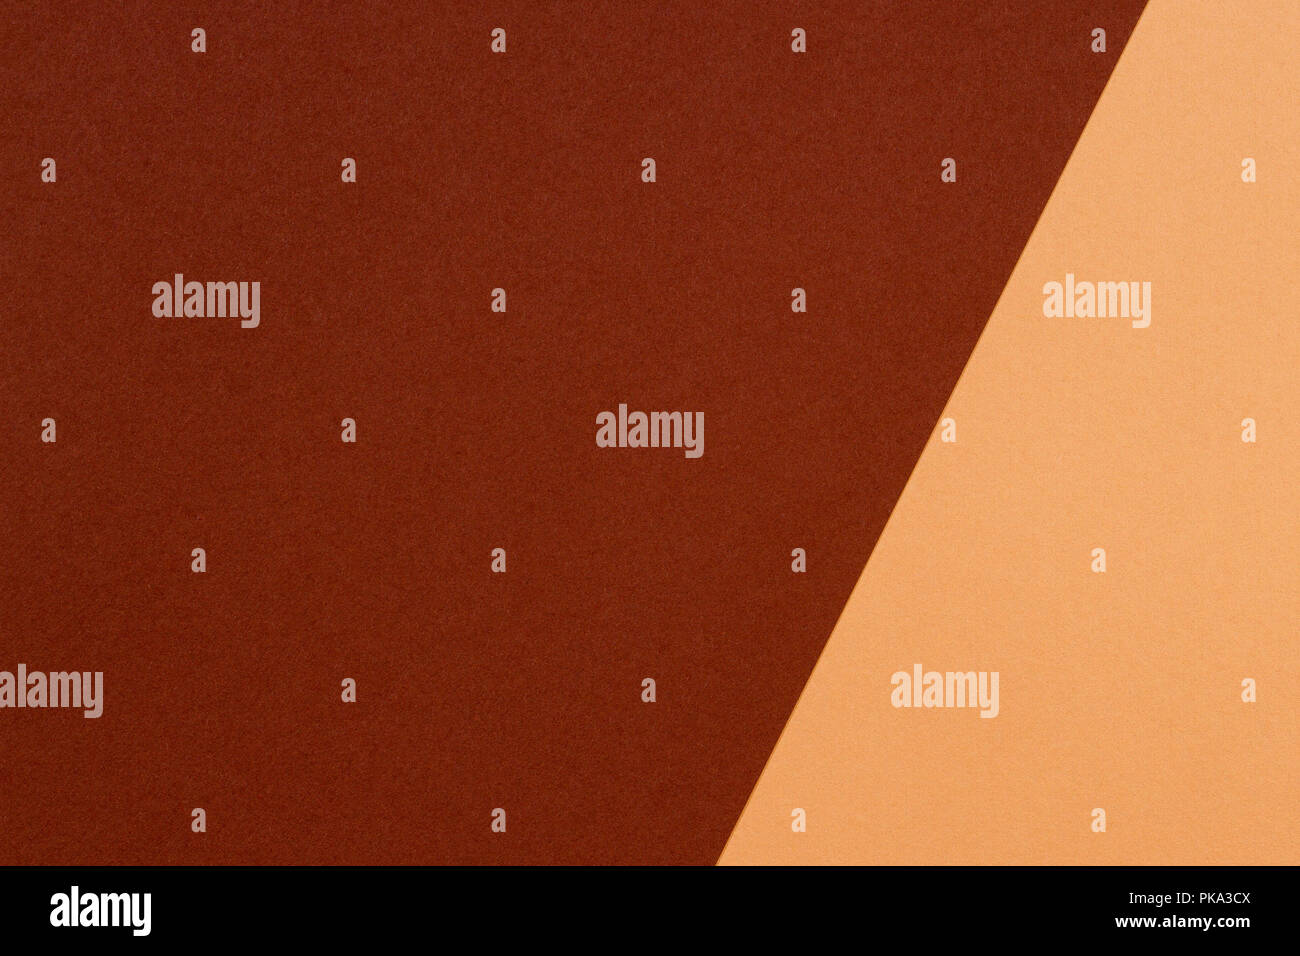 Color papers composition background with beige and brown tones - Stock Image